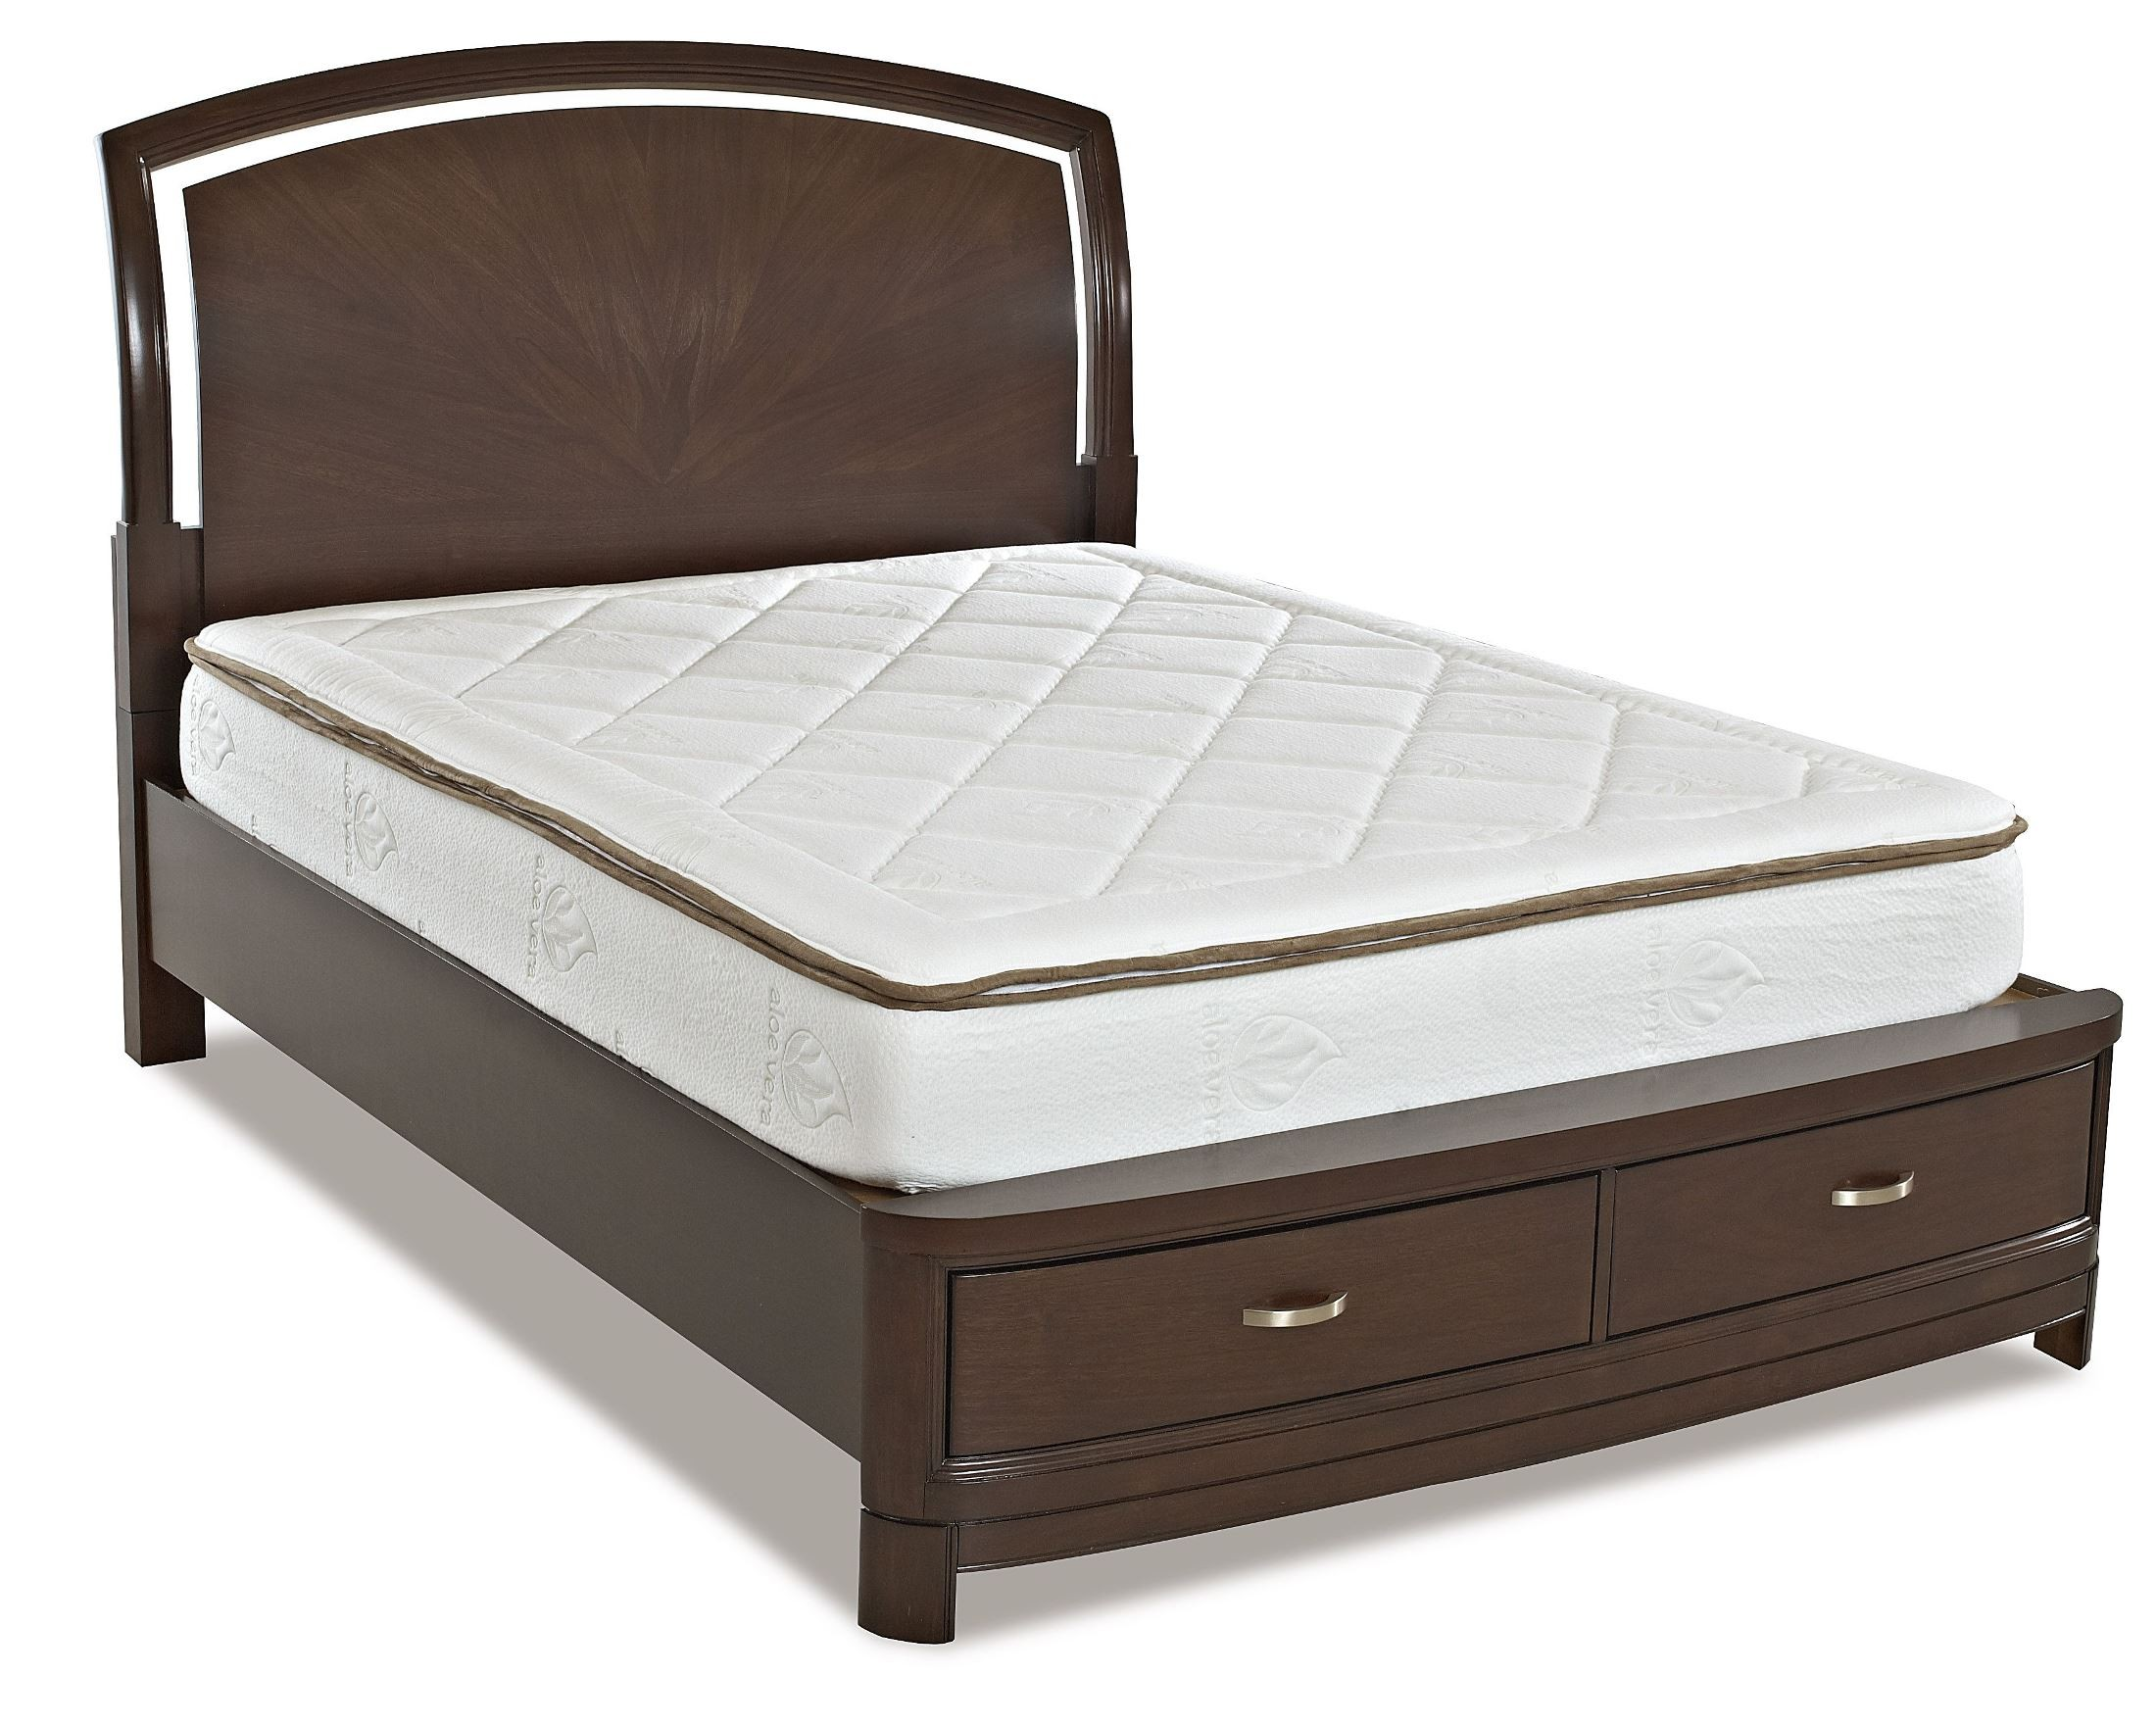 Dream Weaver 10 Cal King Memory Foam Mattress From Klaussner Drmwvrcakkmat Coleman Furniture